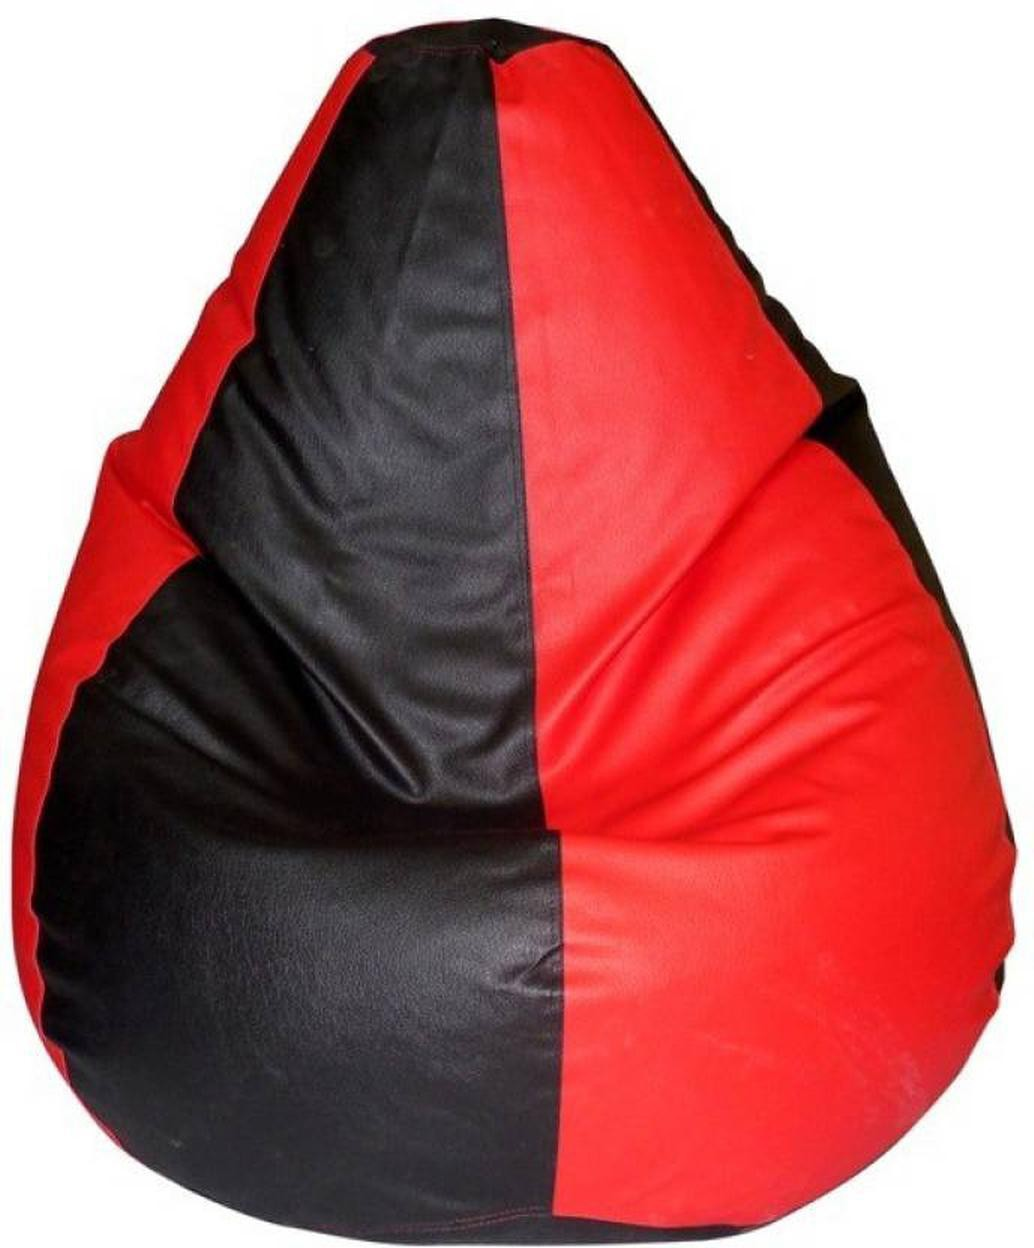 View HELE Large Bean Bag Cover(Red, Black) Furniture (hele)